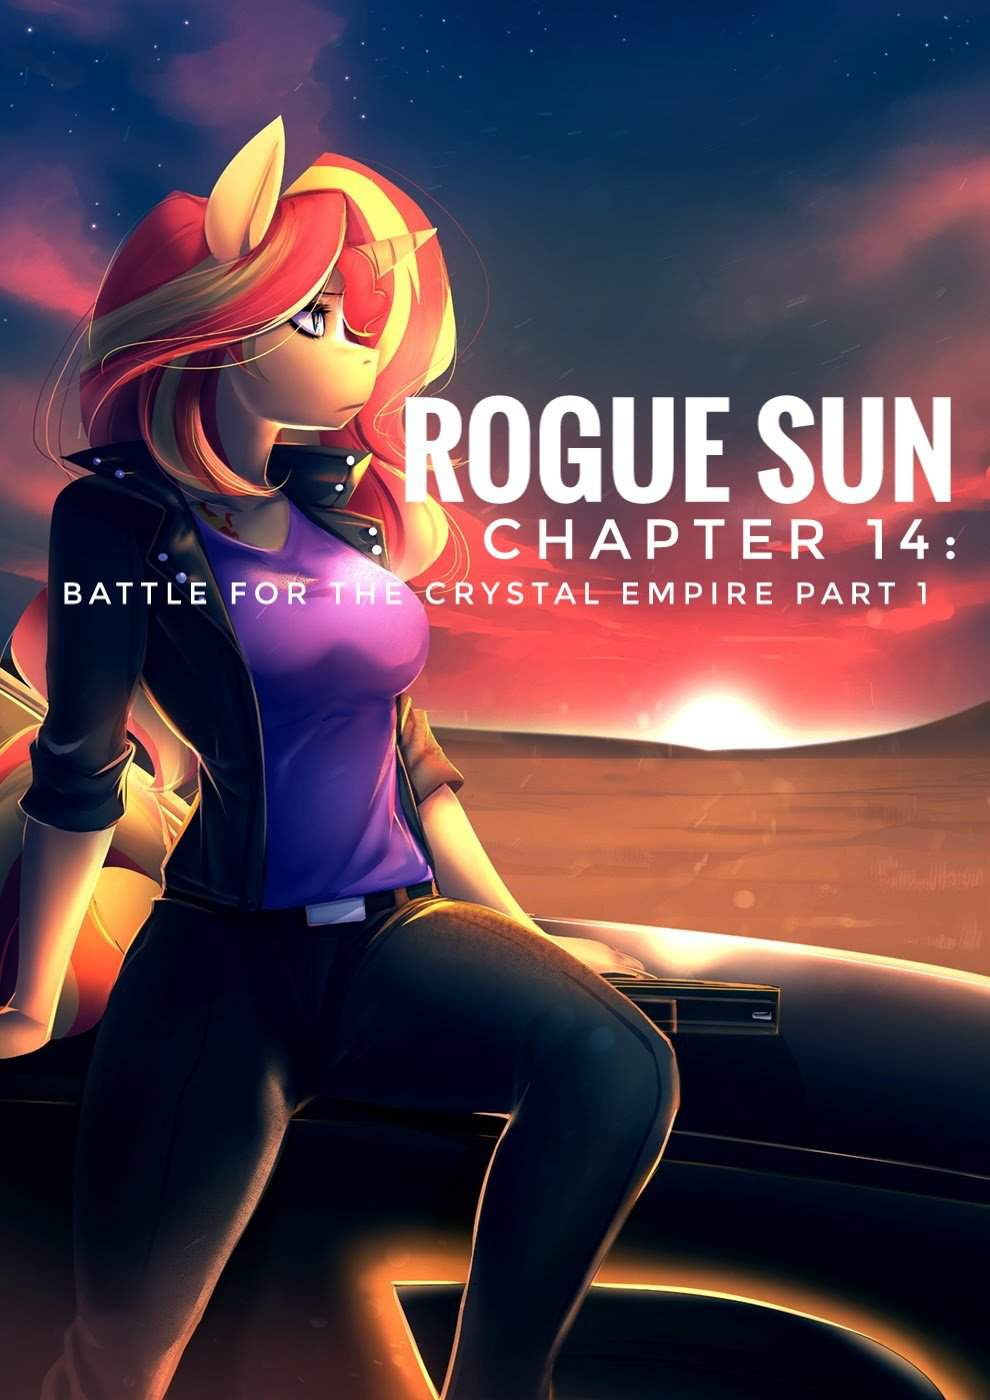 Rogue Sun chapter 14: Battle for the Crystal Empire part 1 | Fan